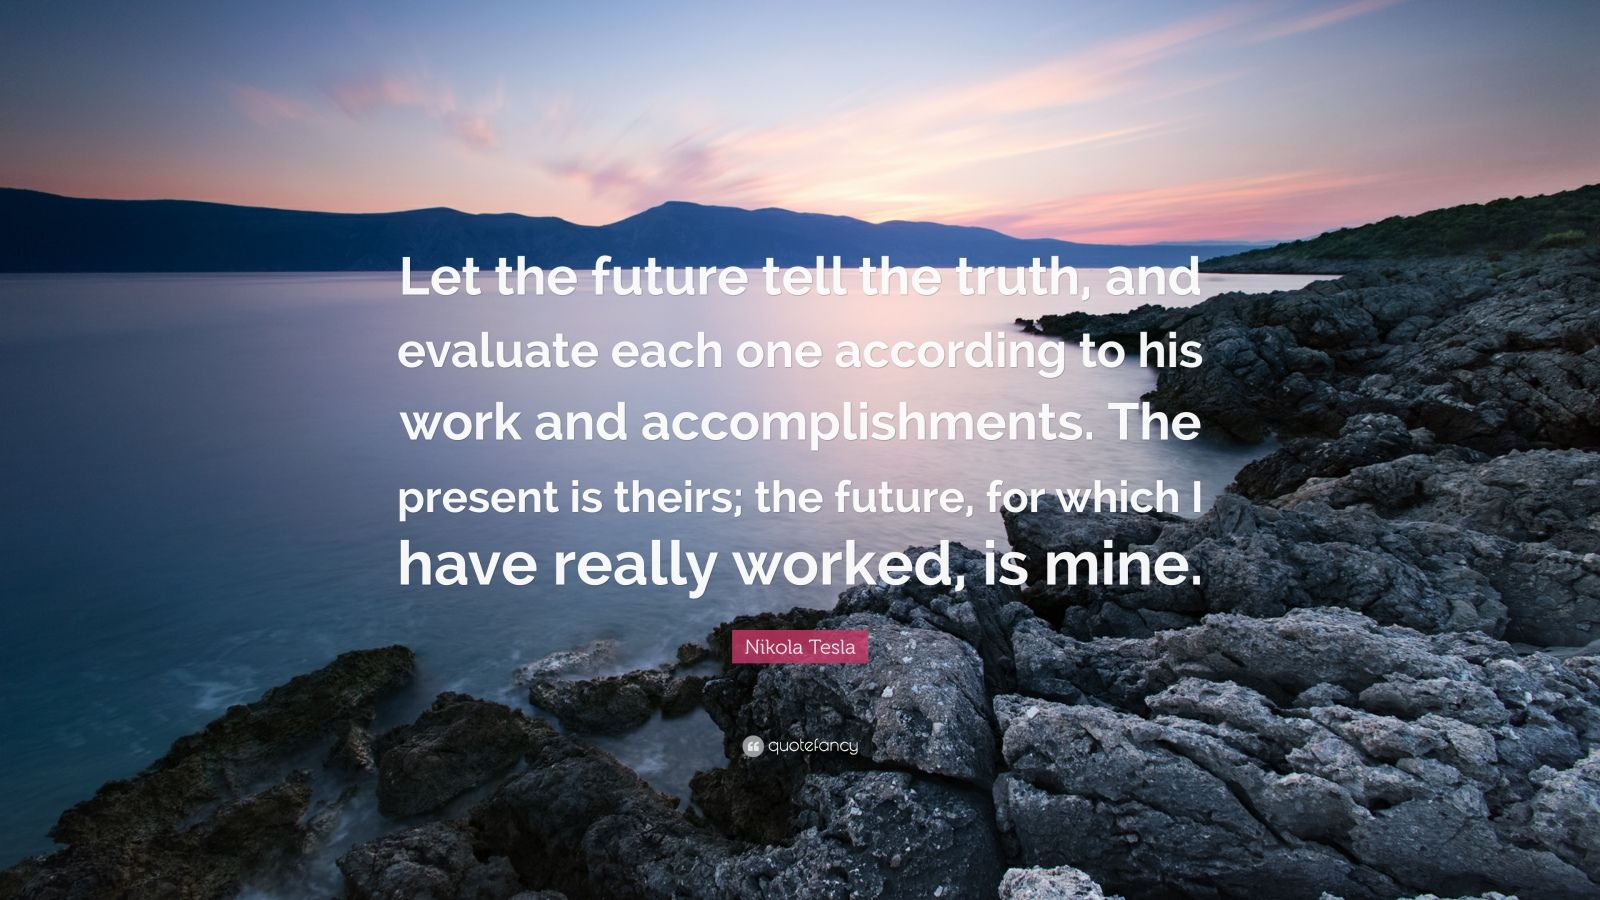 """Nikola Tesla Quote: """"Let the future tell the truth, and evaluate each one according to his work and accomplishments. The present is theirs; the future, for which I have really worked, is mine."""""""